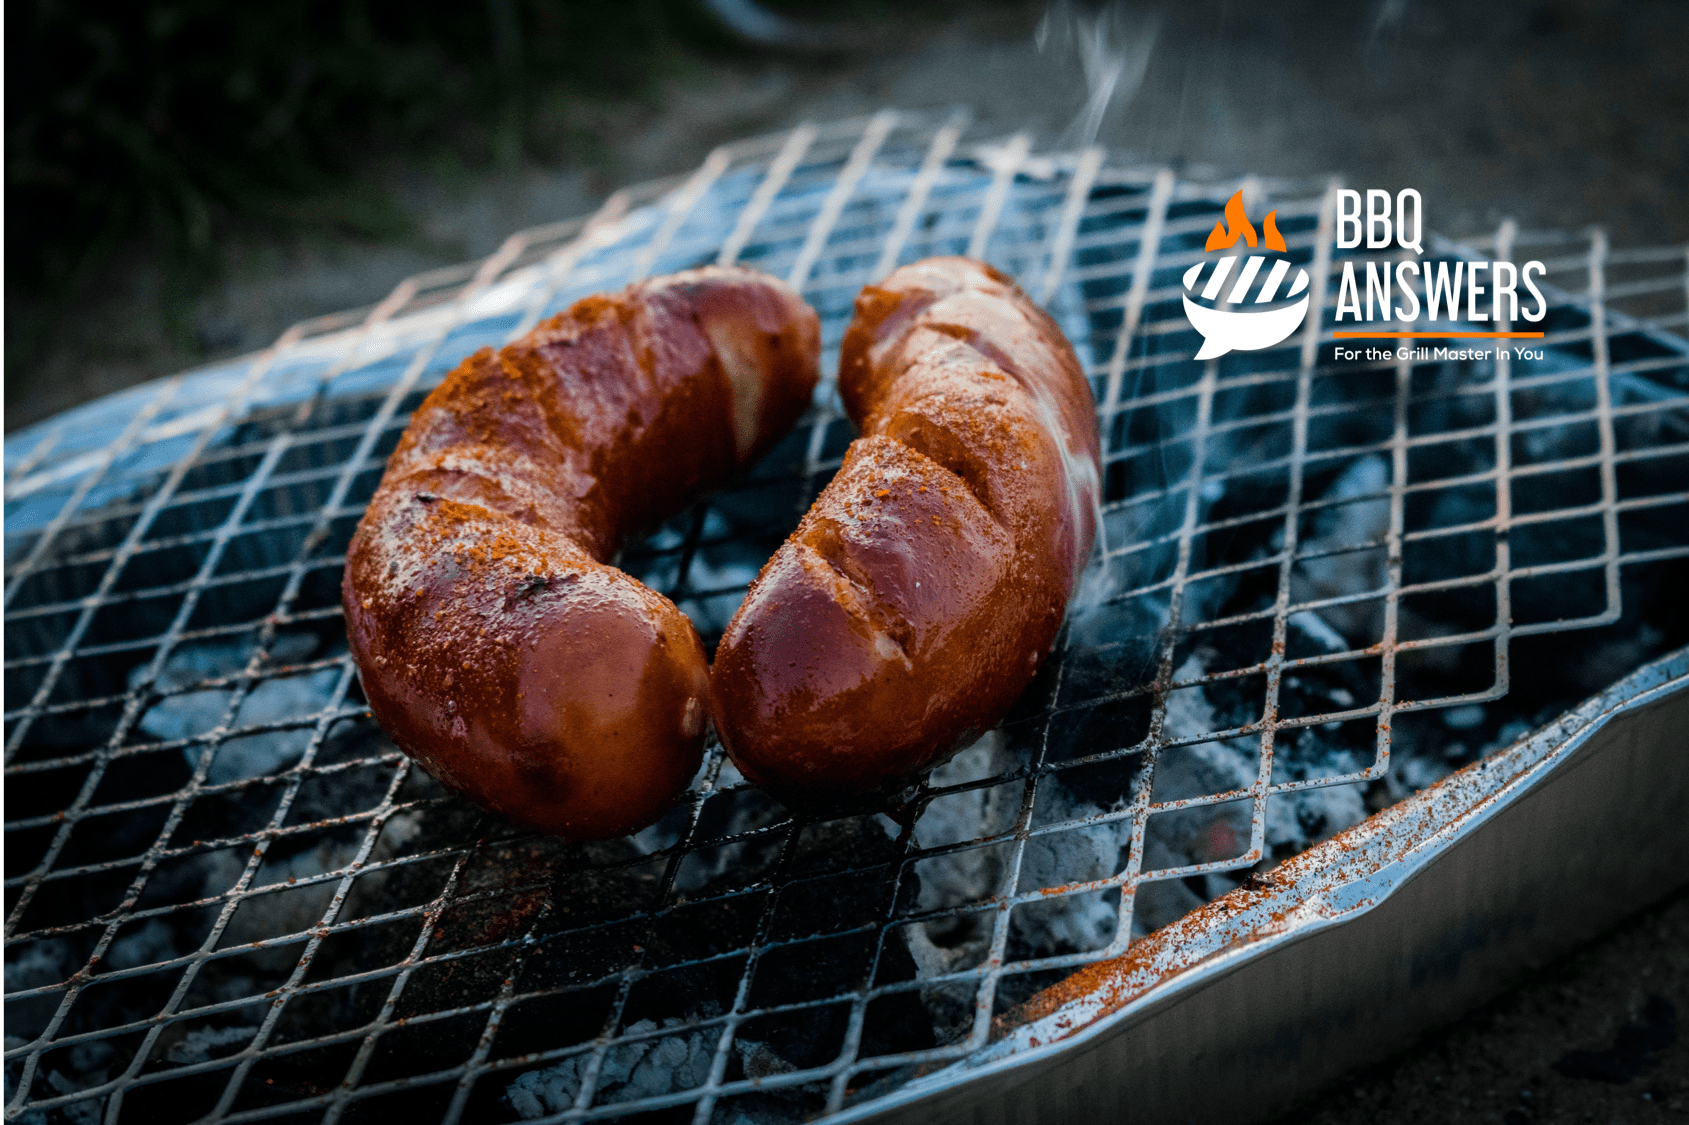 Cooking on a Disposable BBQ Grill | BBQanswers